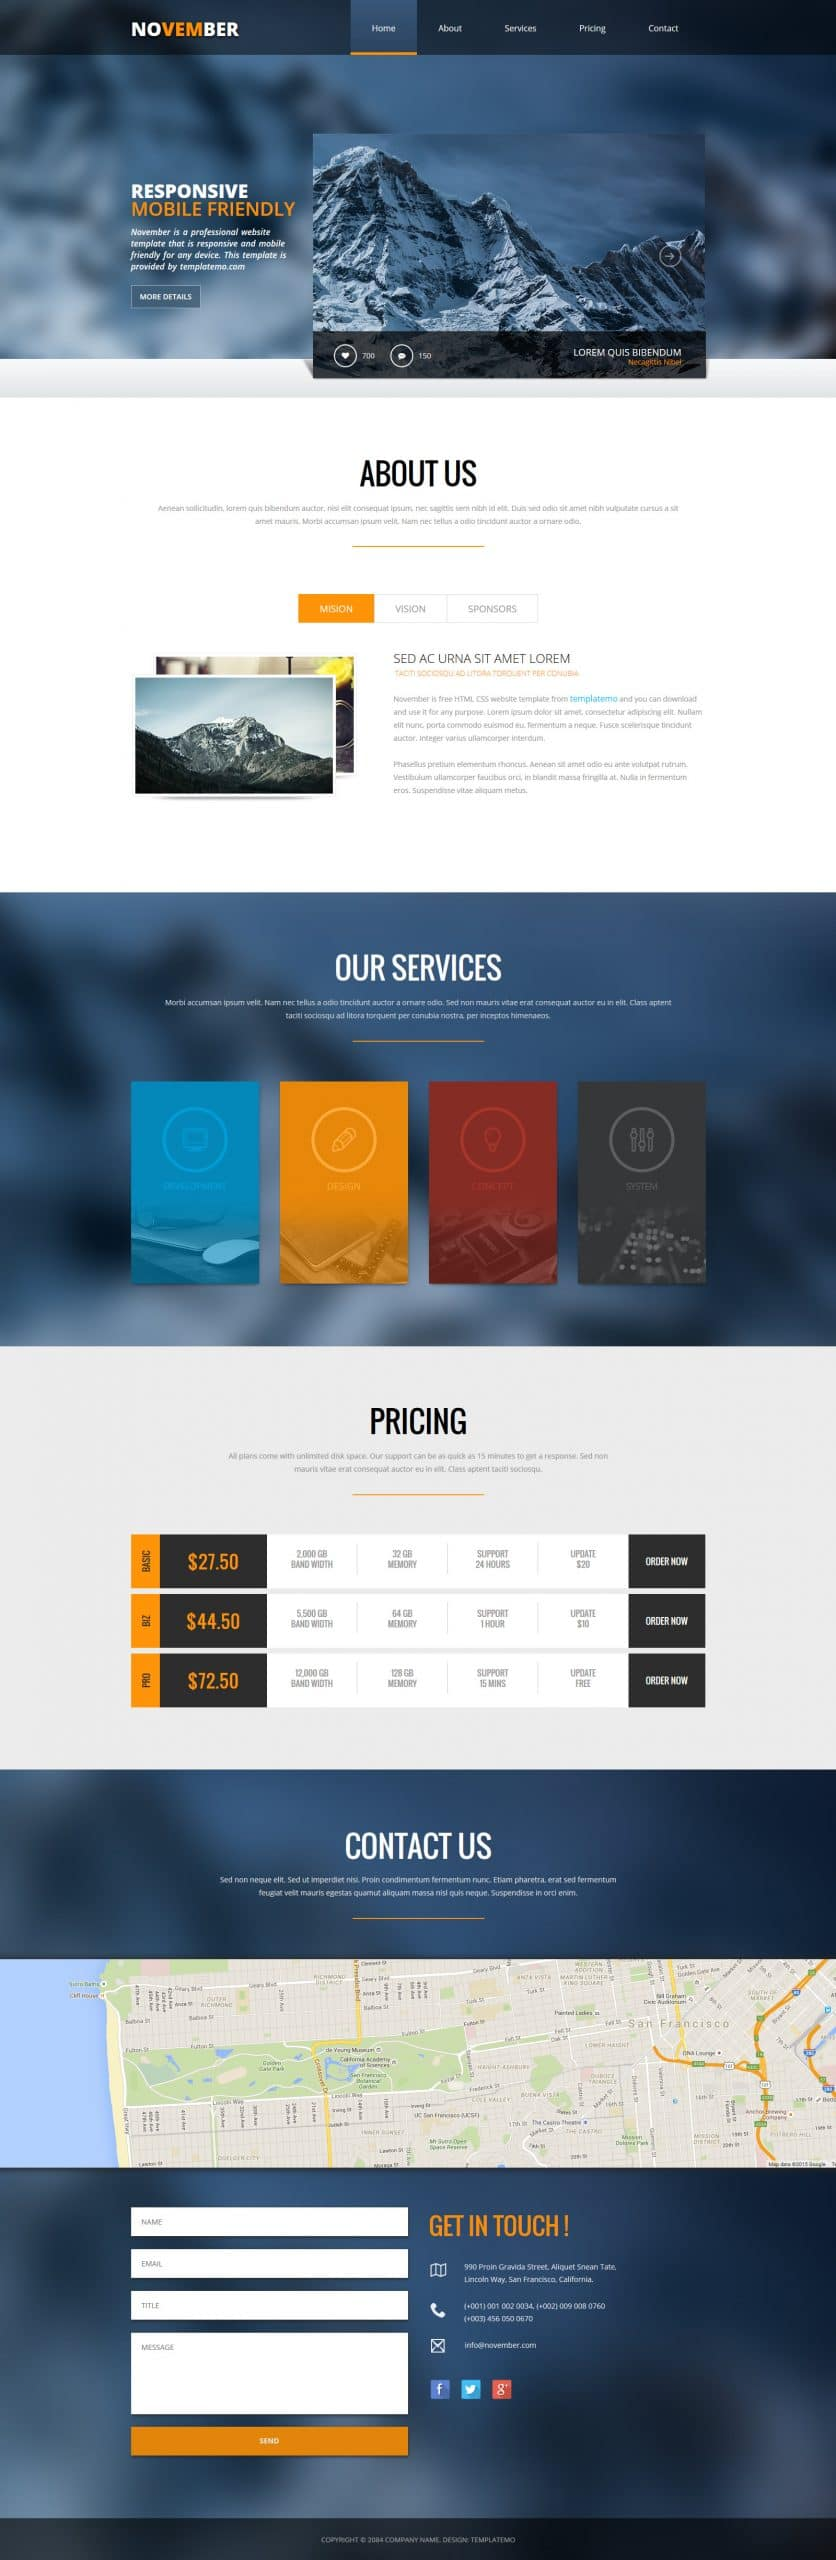 November - HTML template for professional websites